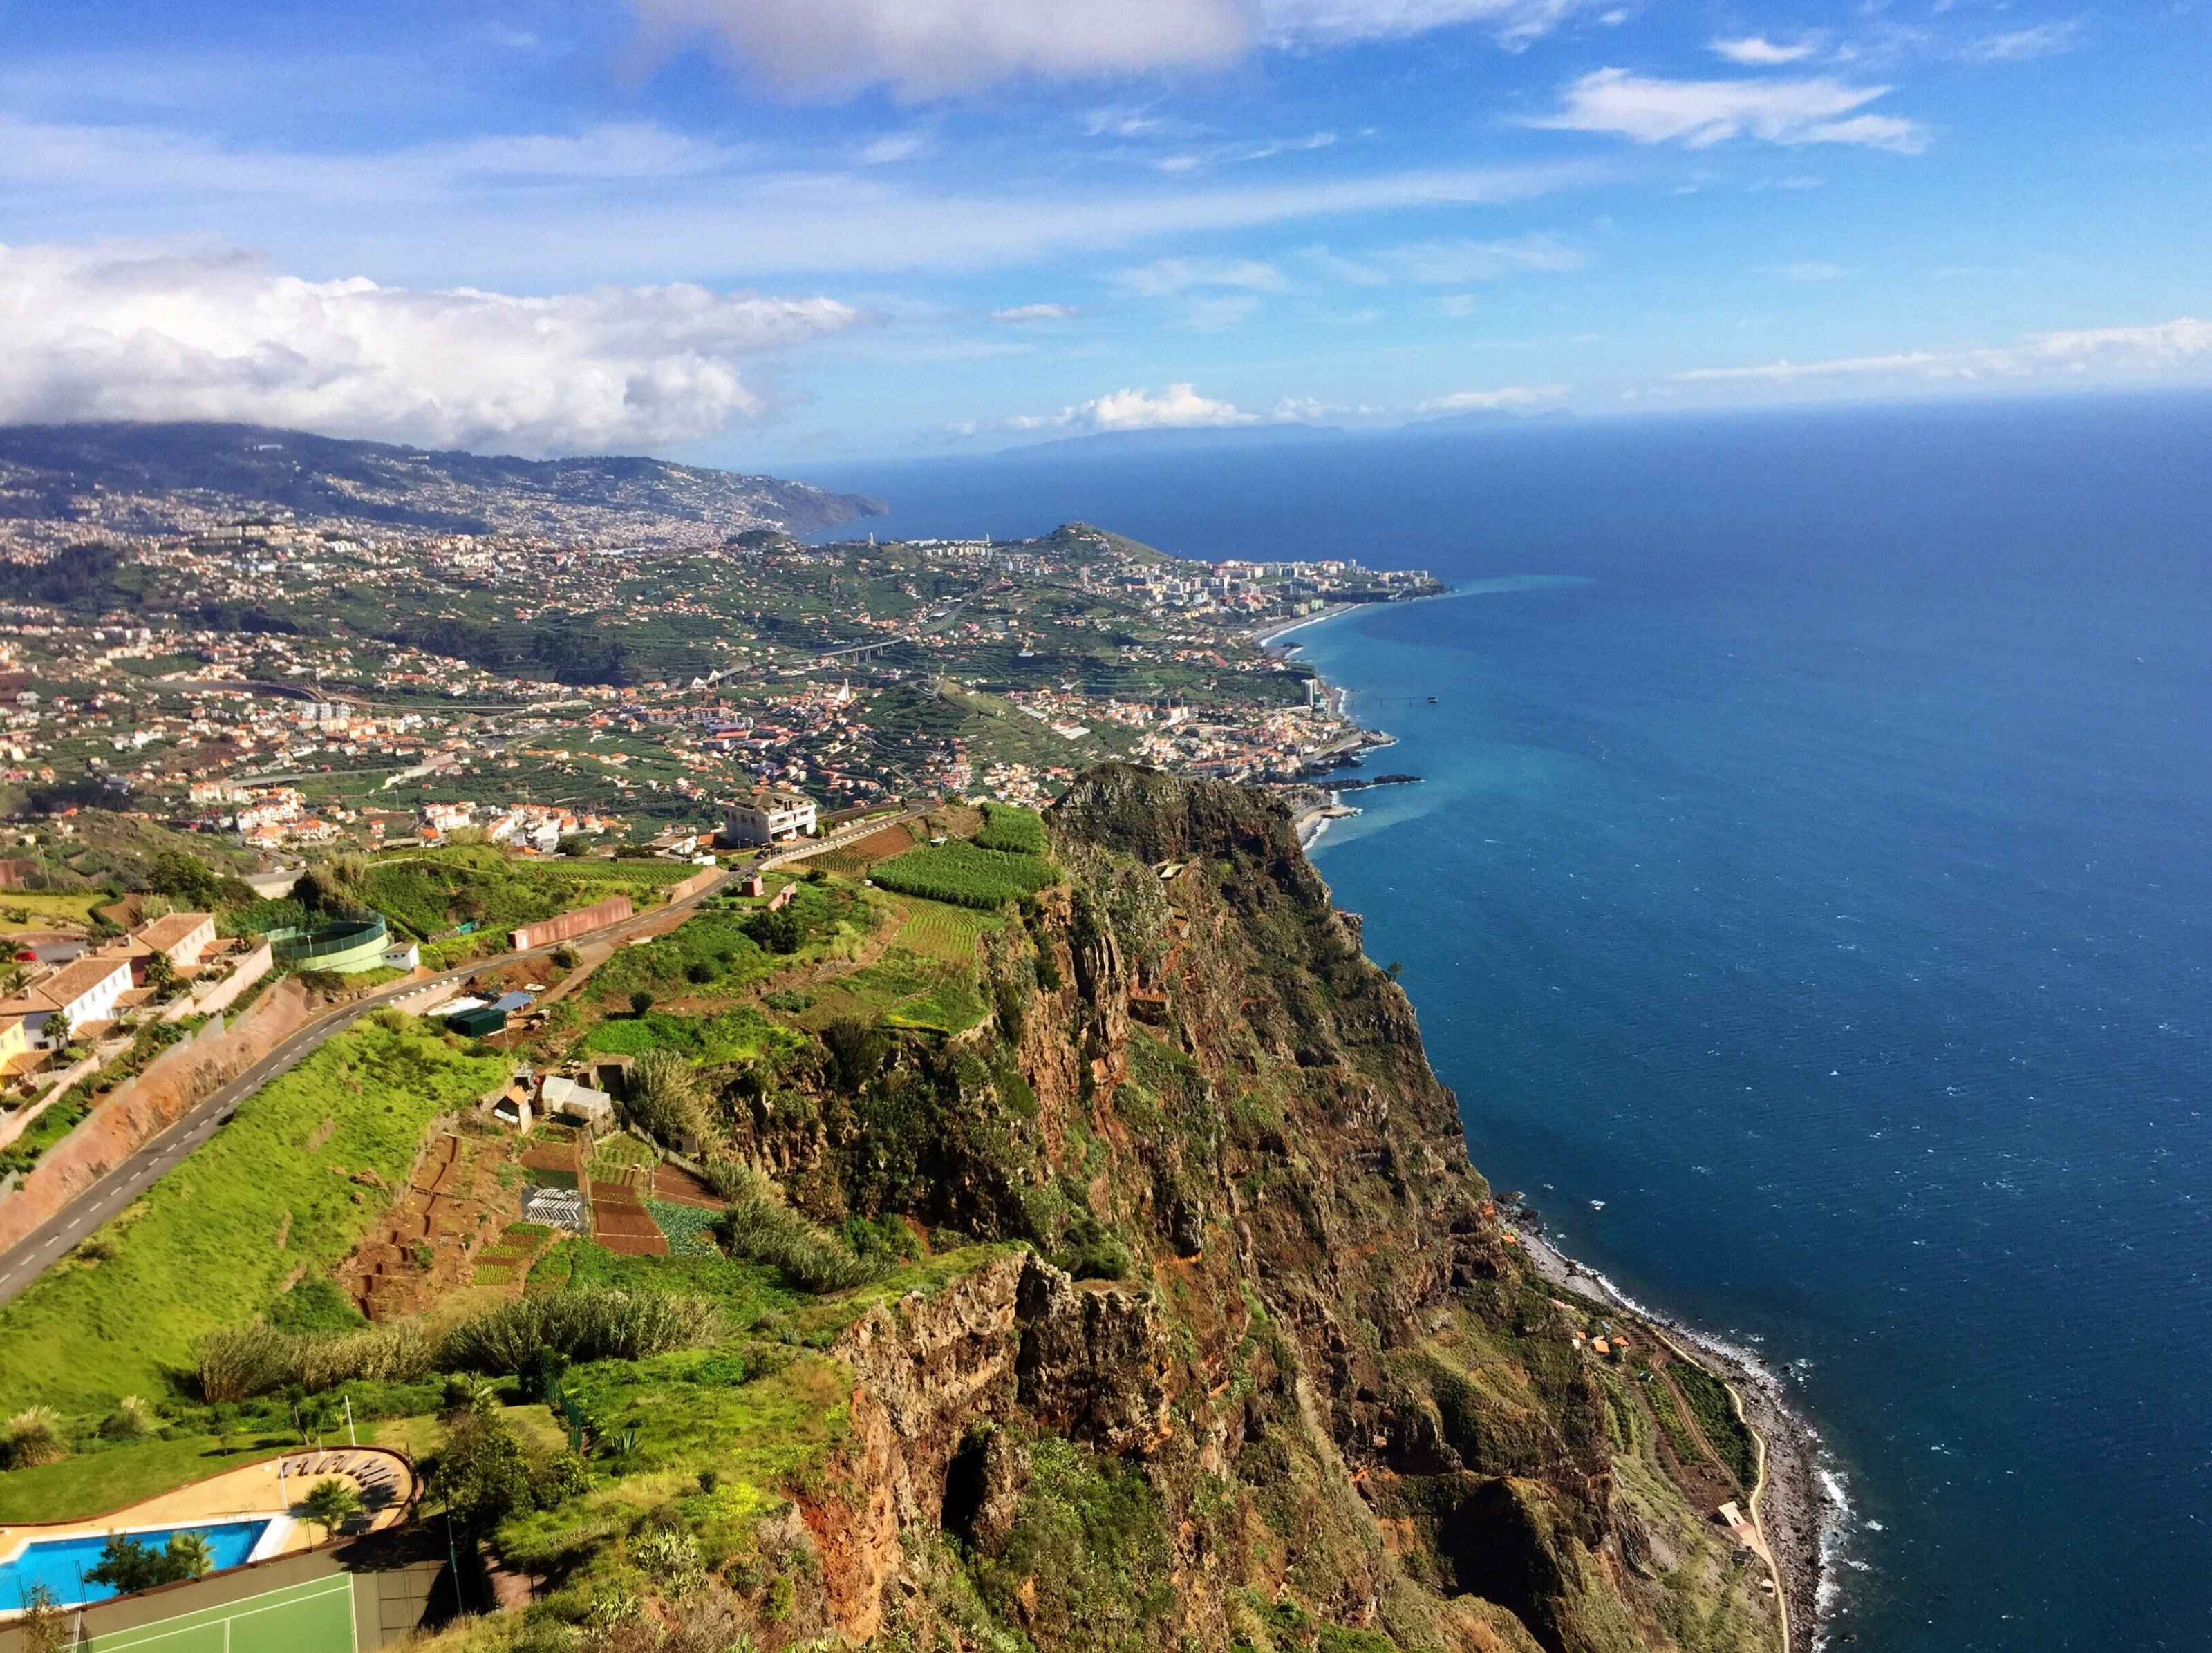 View of Funchal in Madeira Island